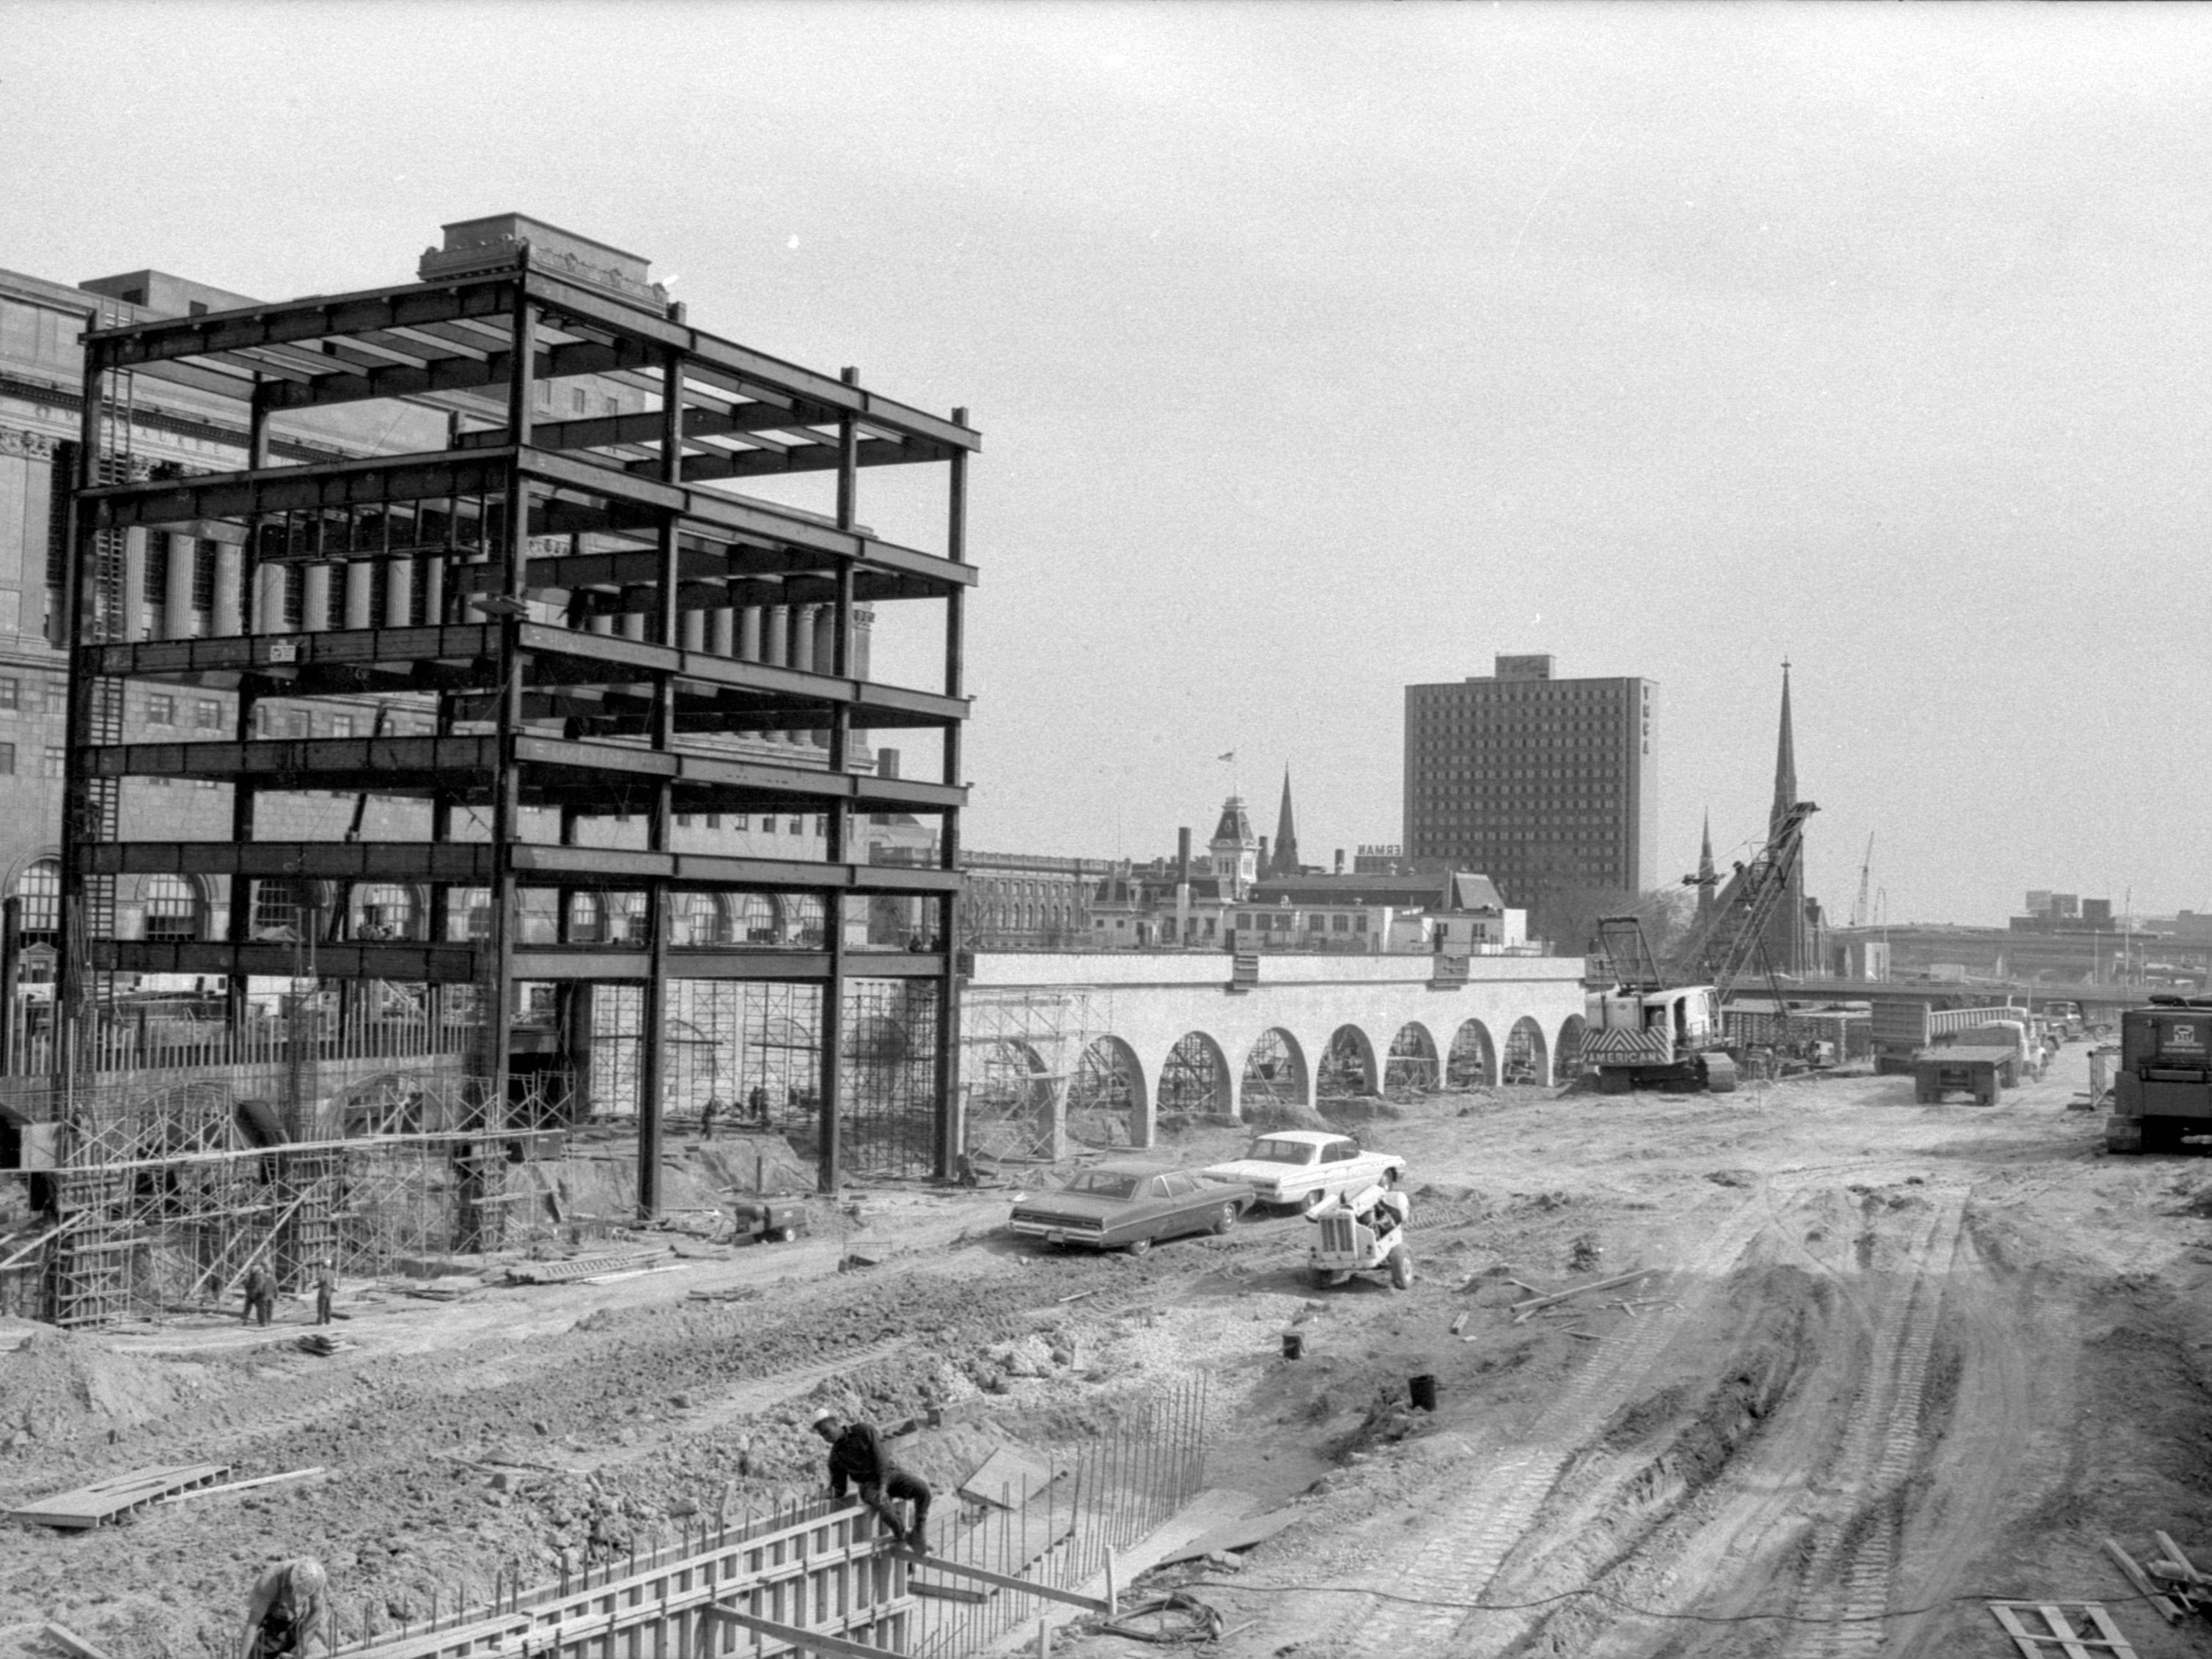 In the spring of 1968, workers still have a long way to go to get the County Courthouse Annex done in time for the opening of the North-South Freeway and the Marquette Interchange, both due open by the end of 1968.